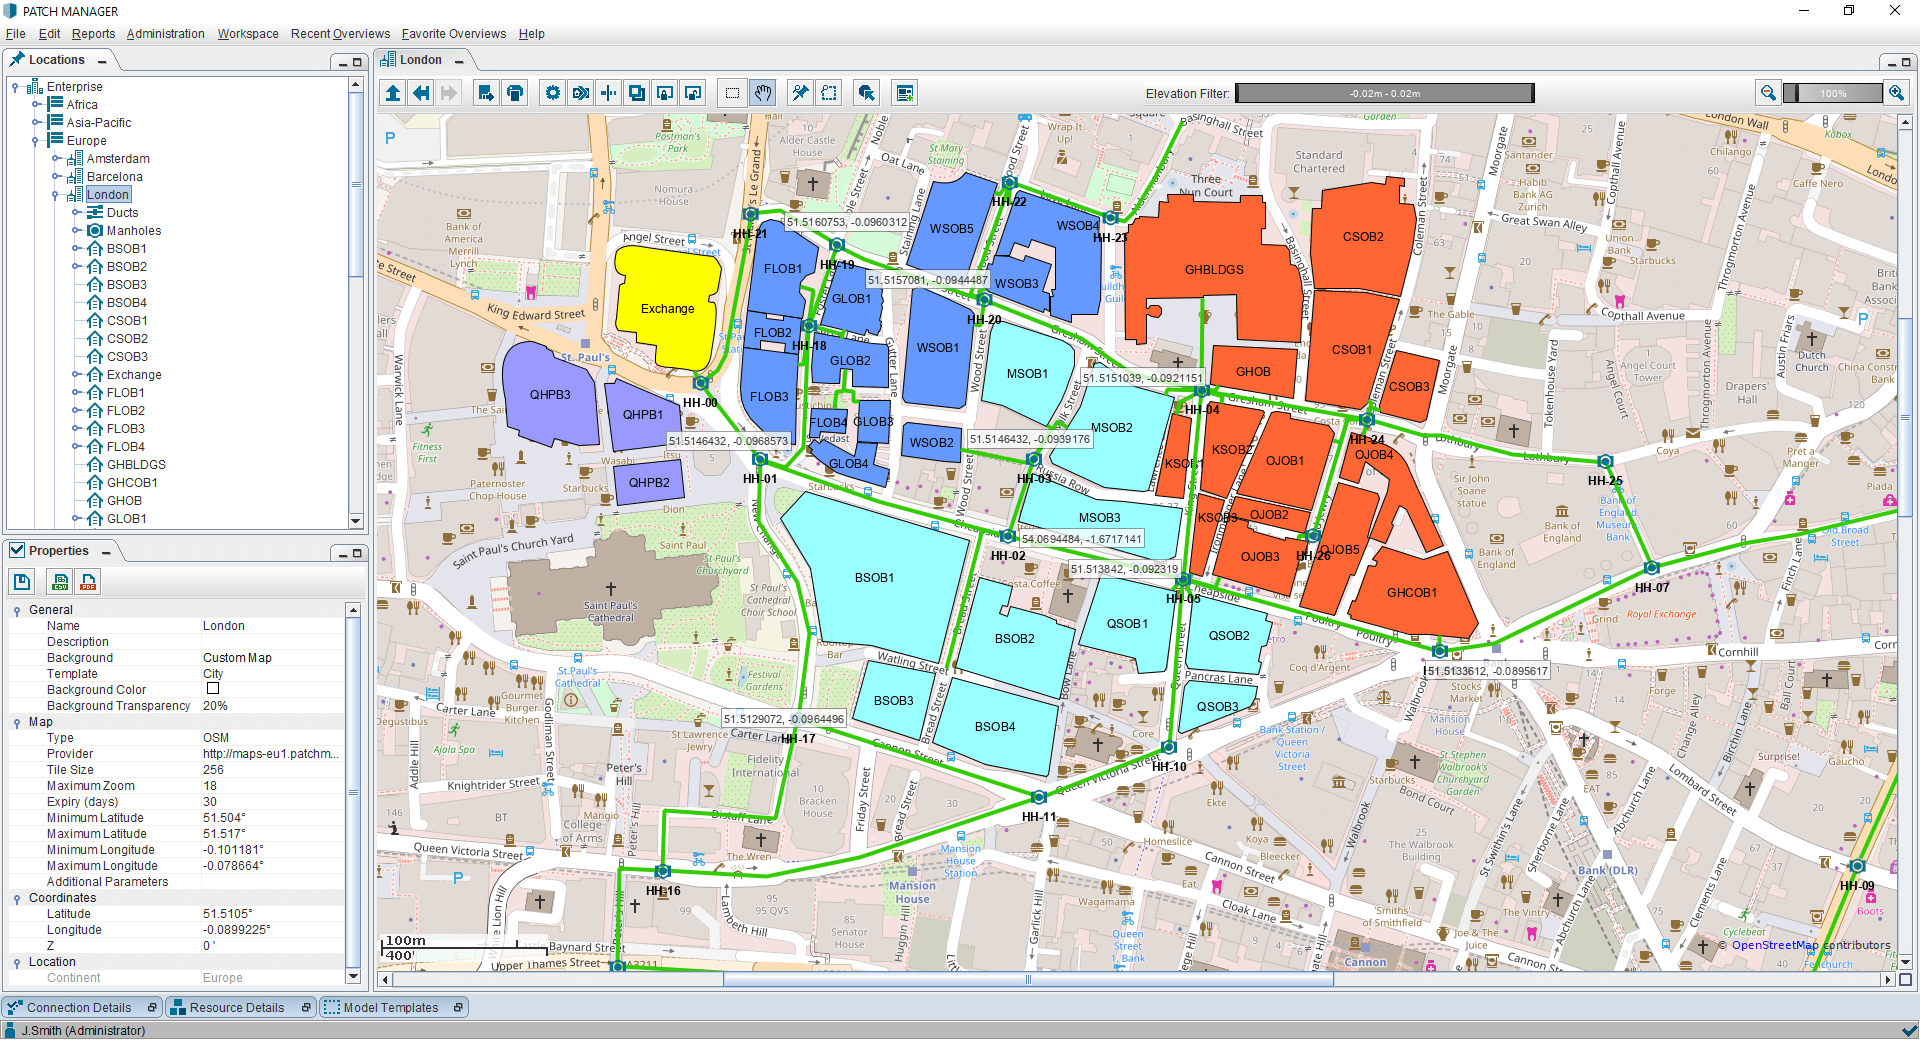 PATCH MANAGER GIS extension